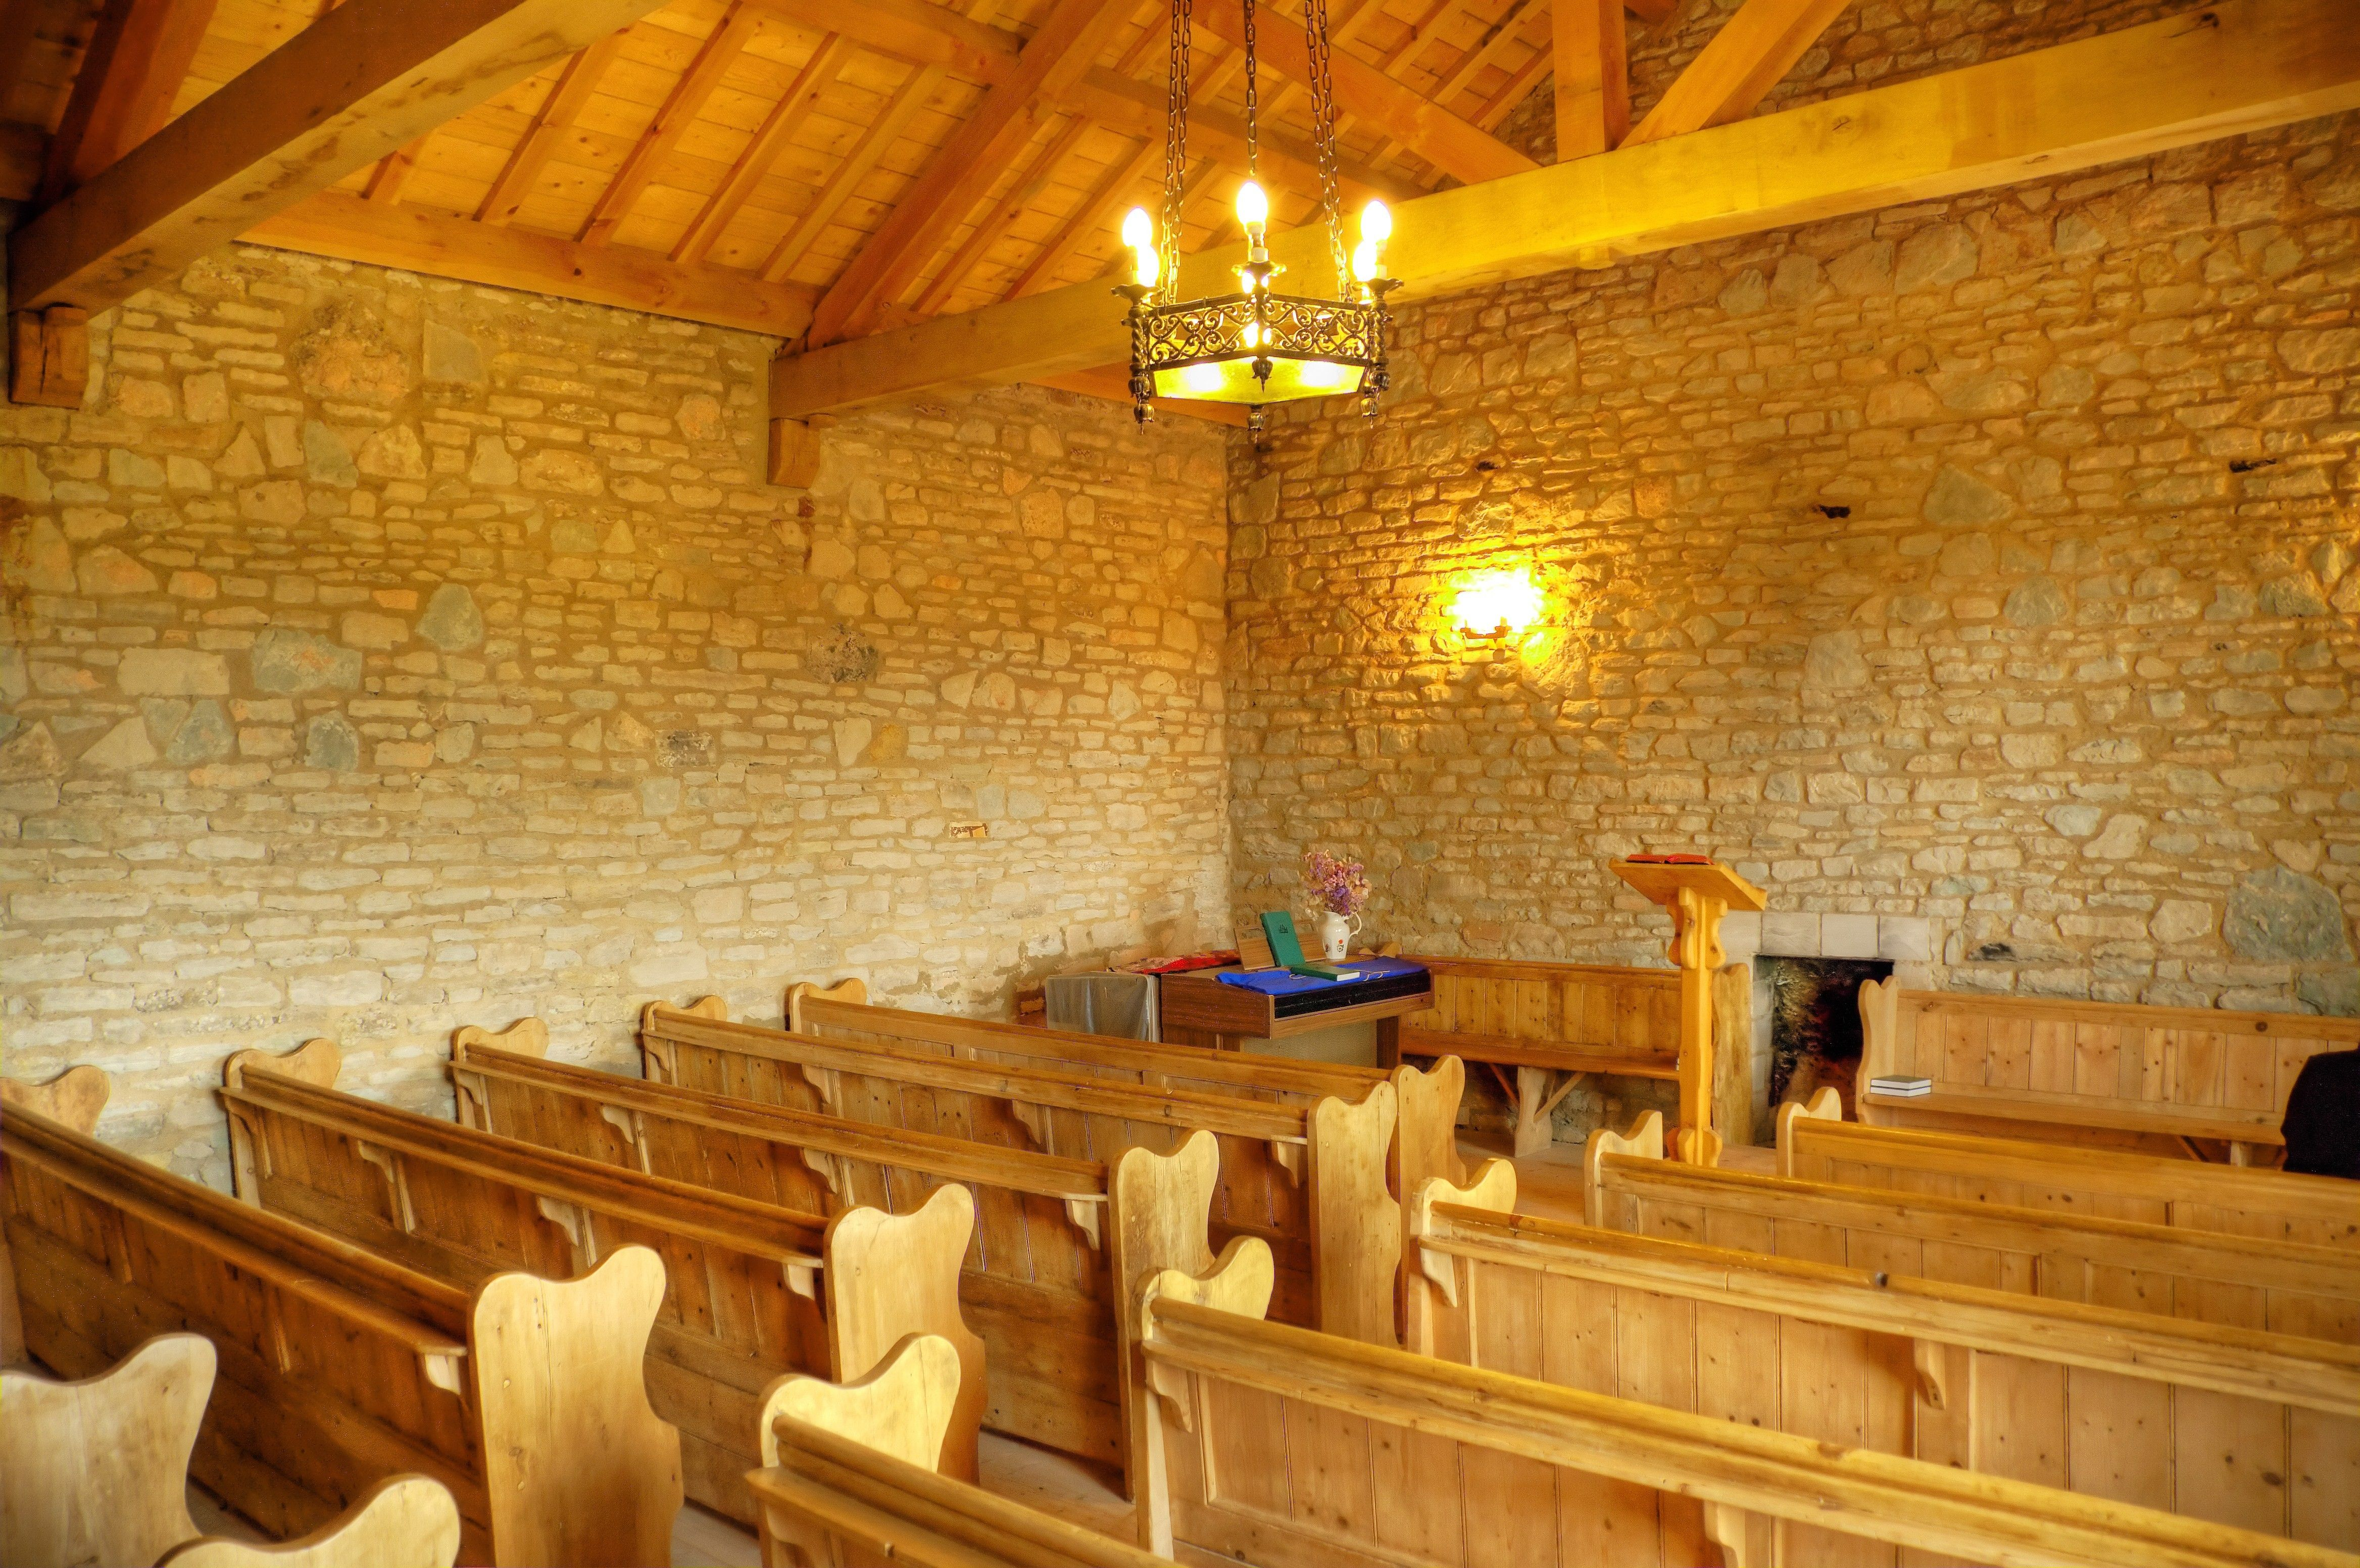 The interior of a chapel in Gadfield Elm, England.